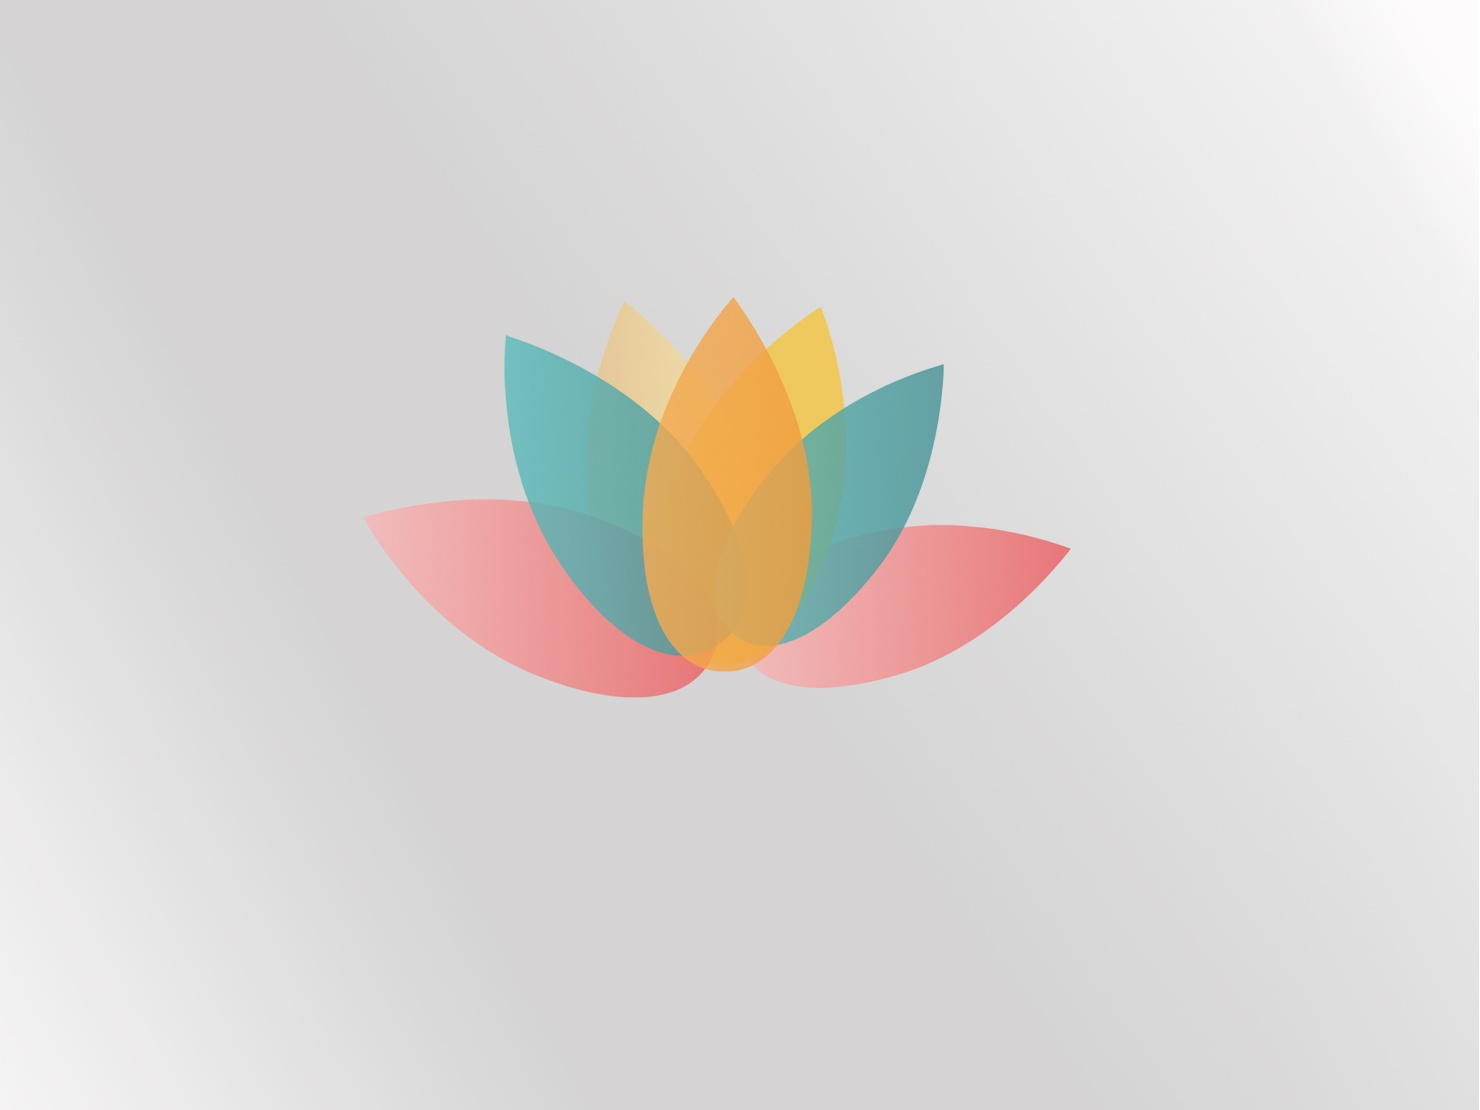 Spa Aromatic sore spa logo spa branding logodesign logo a day logodaily logo design logo